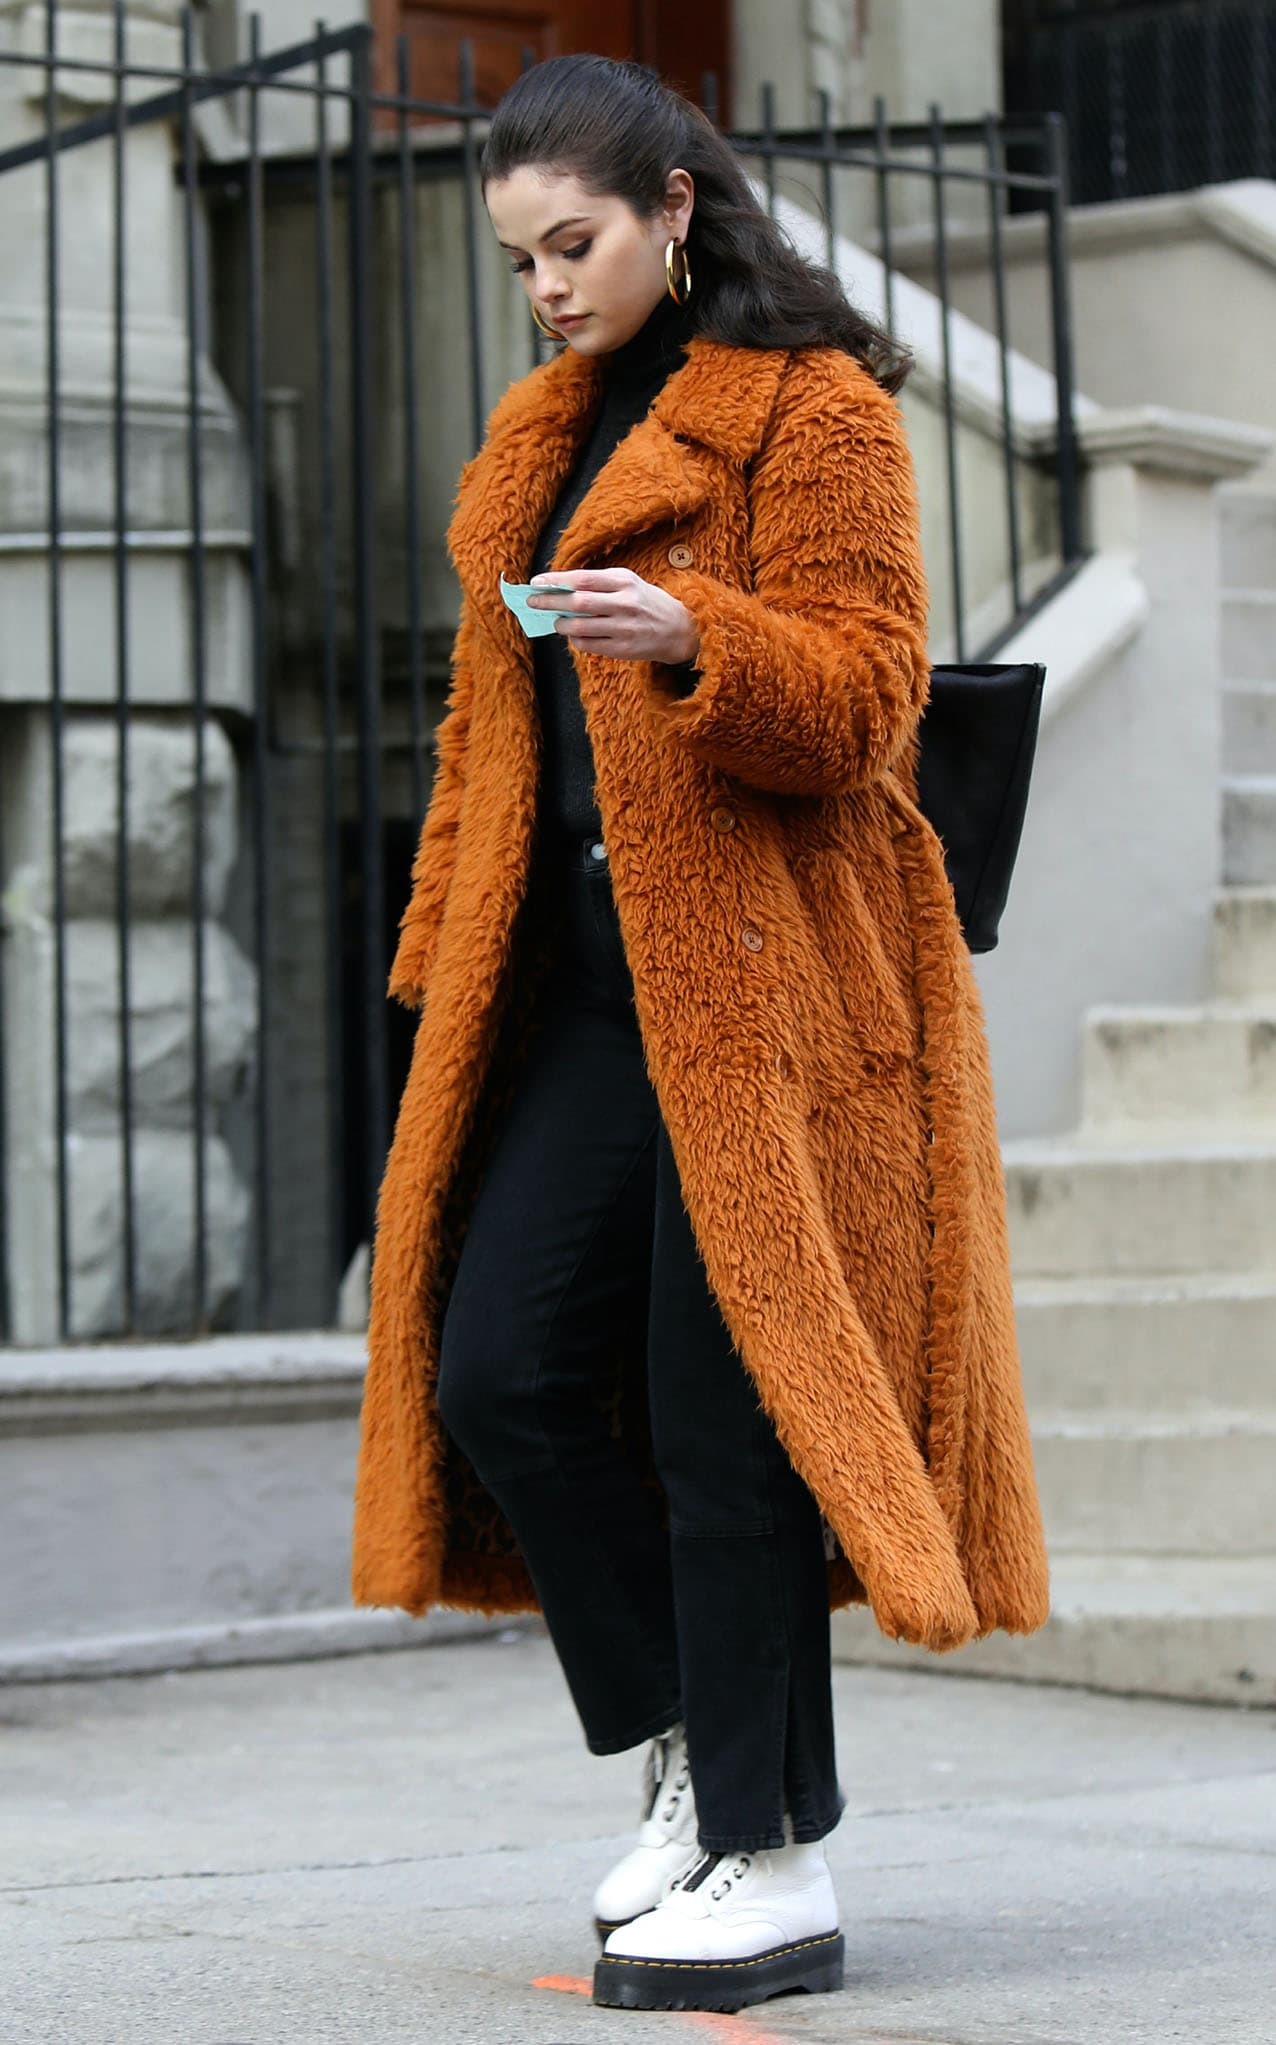 Selena Gomez wearing a brown teddy faux fur coat with a black turtleneck sweater